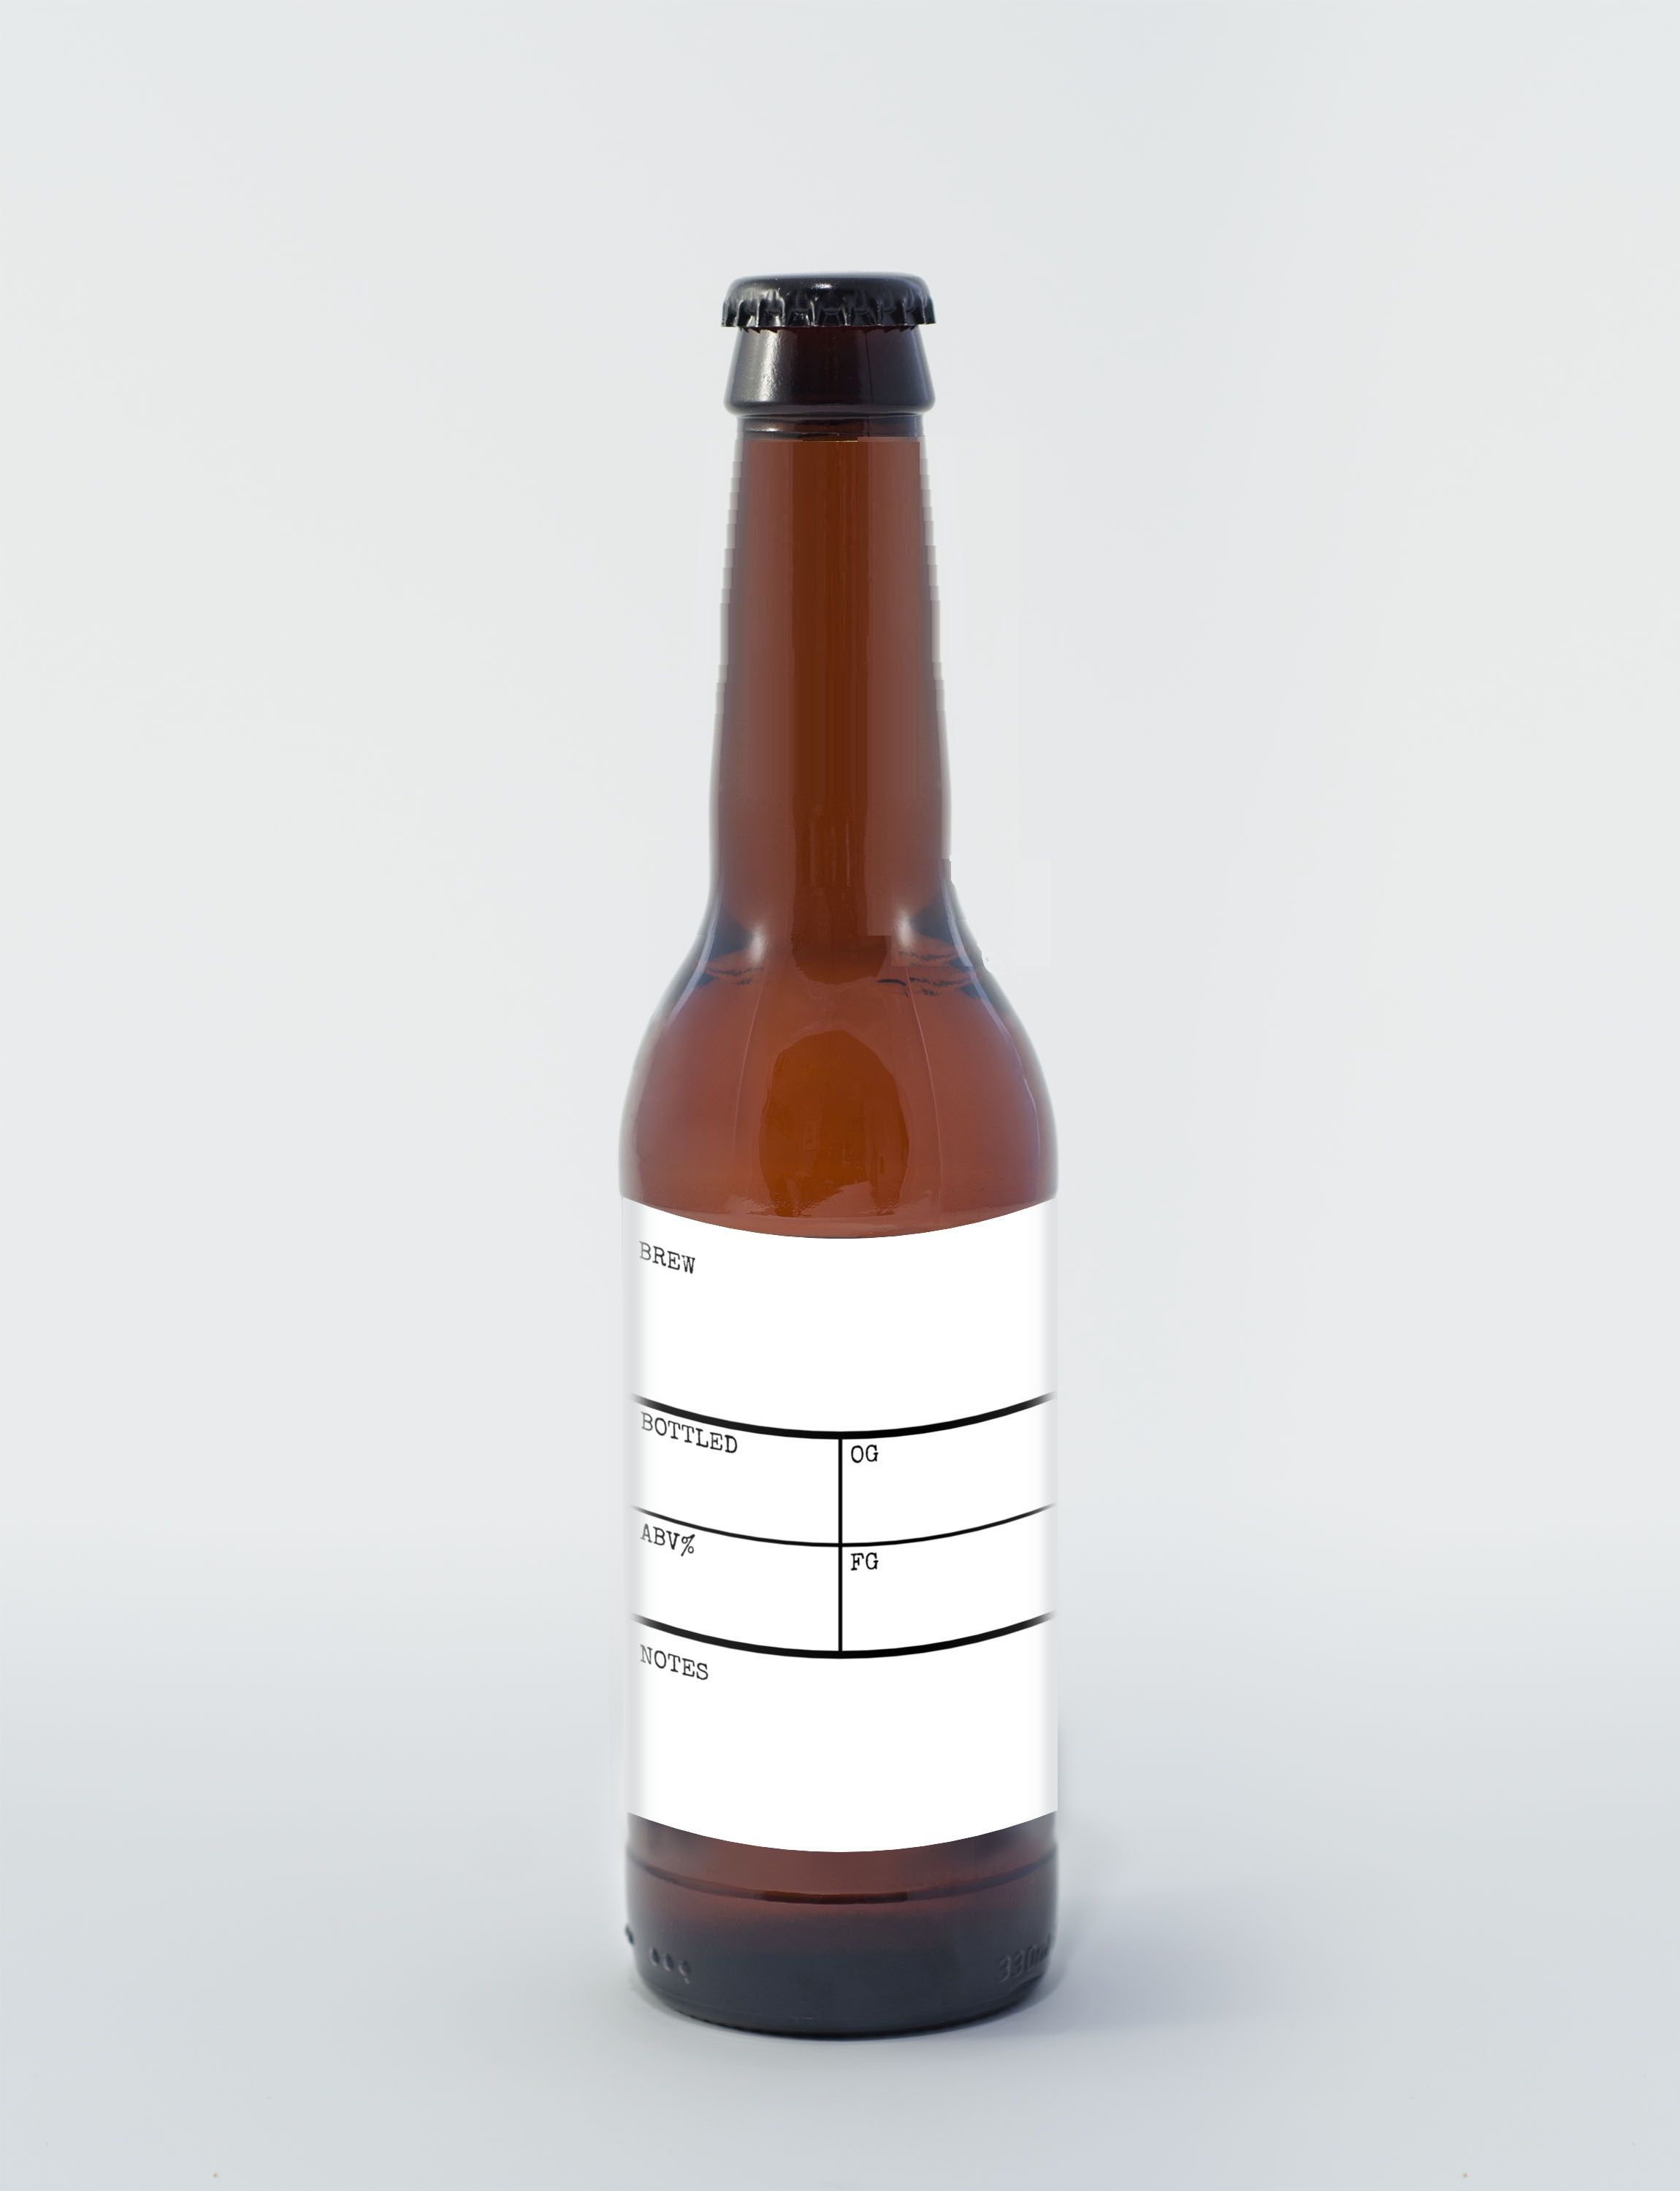 005 Outstanding Beer Bottle Label Template Inspiration  Free Dimension WordFull